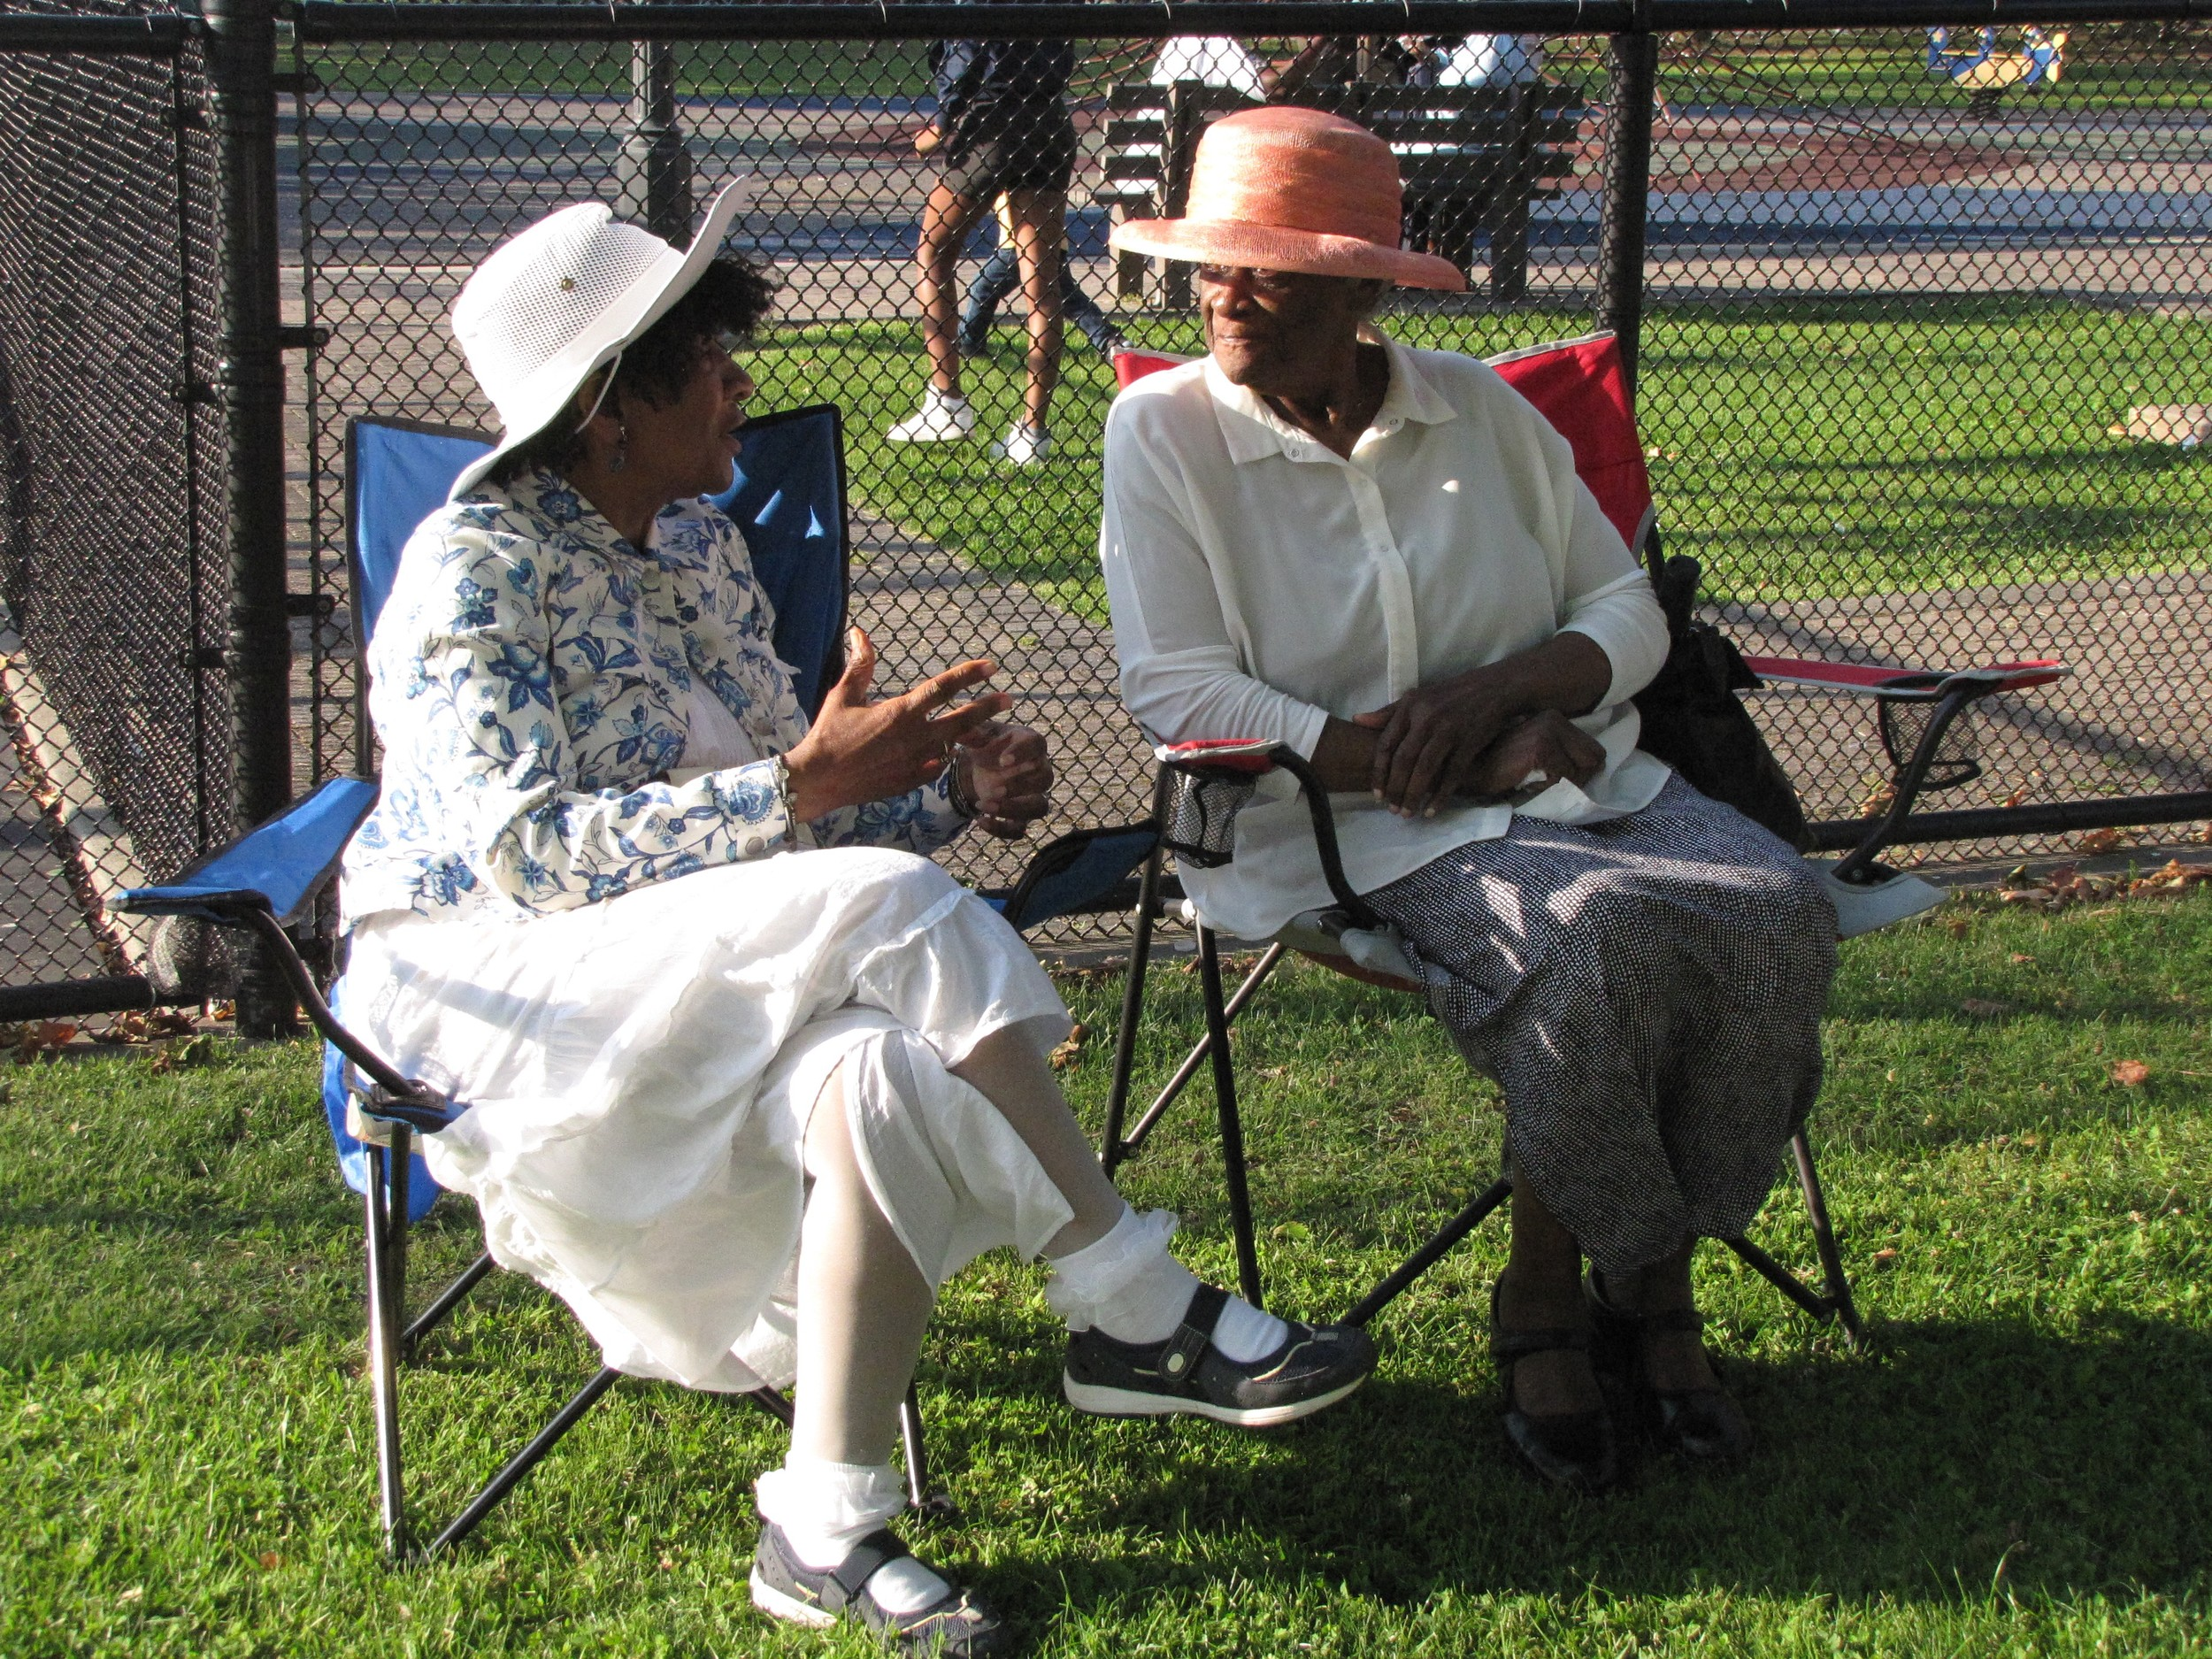 While they waited for the ceremony honoring Bishop White, two Freeport women chatted.